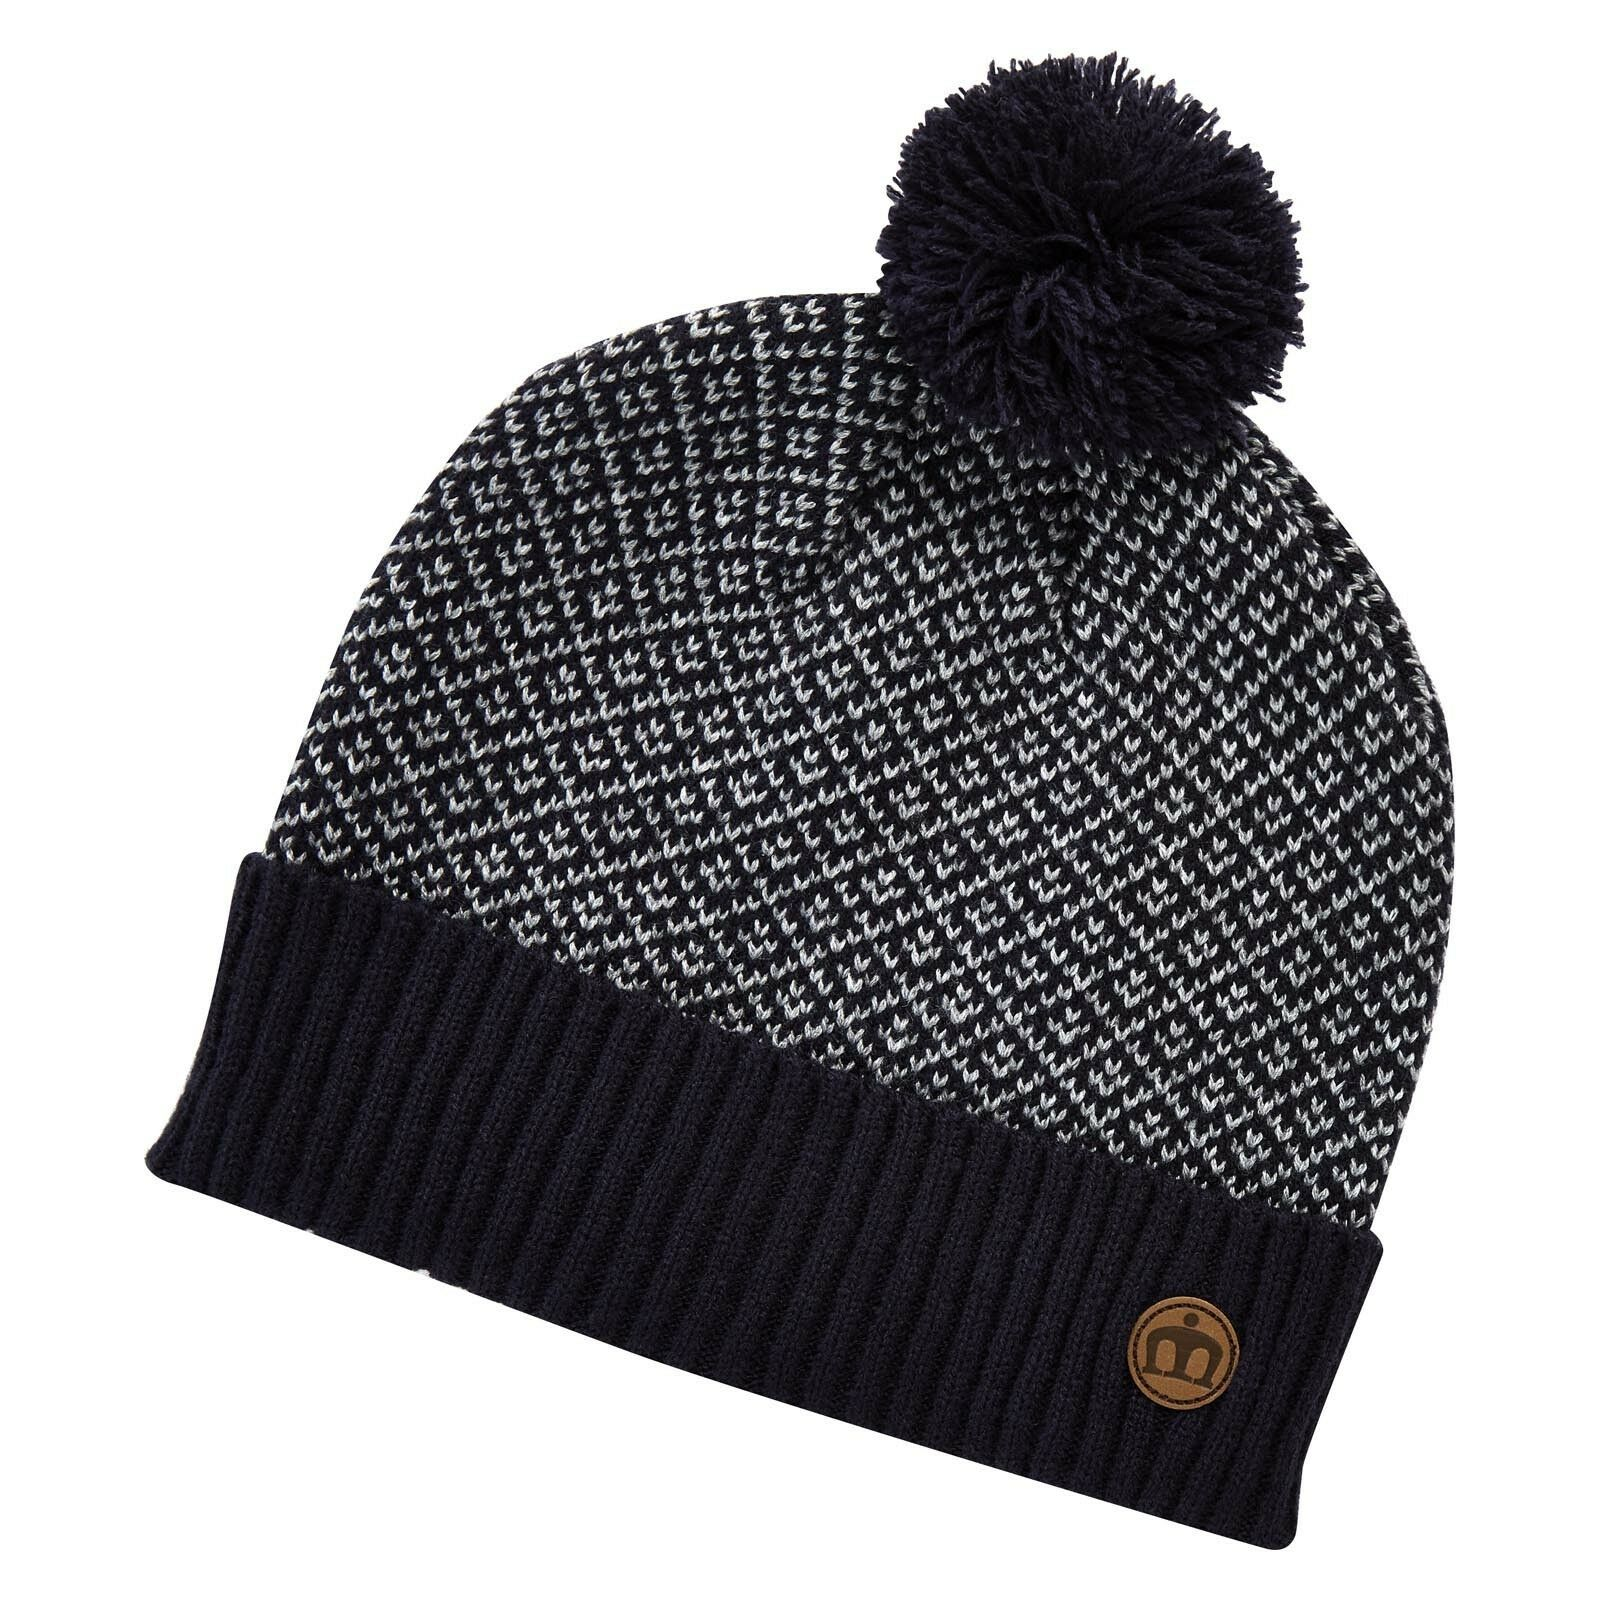 SCONTO 20% MERC LONDON CROYDON CAPPELLO PON PON BERRETTO CASUAL BOBBLE HAT